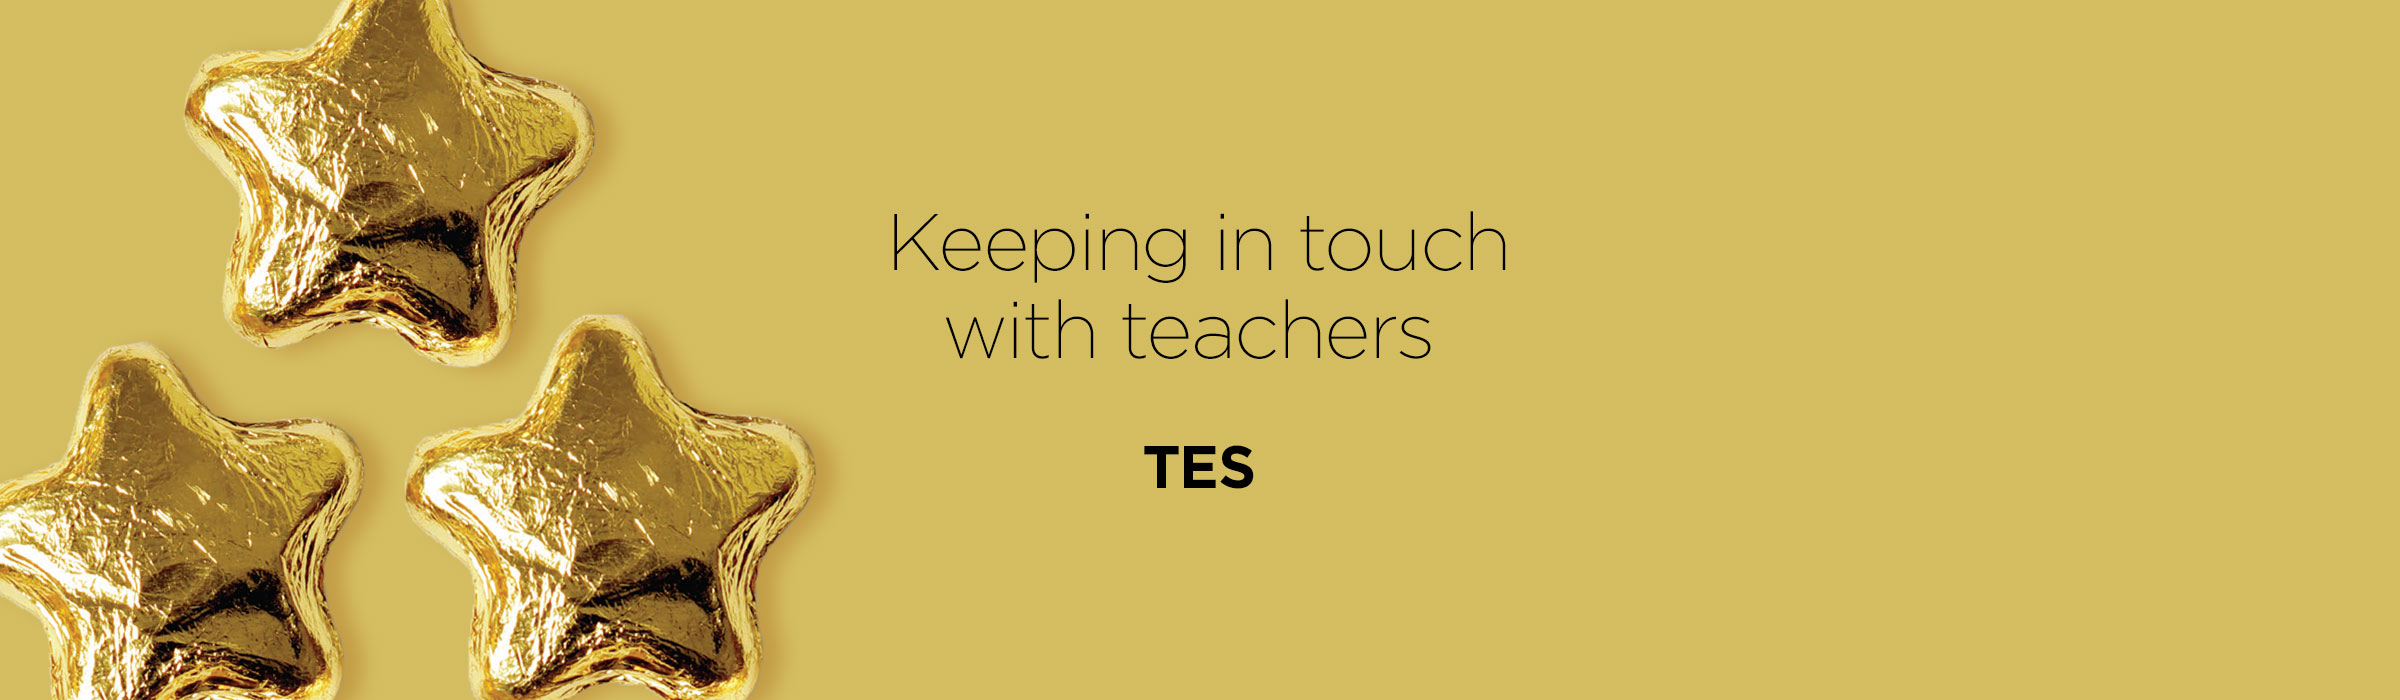 TES – Keeping in touch with teachers